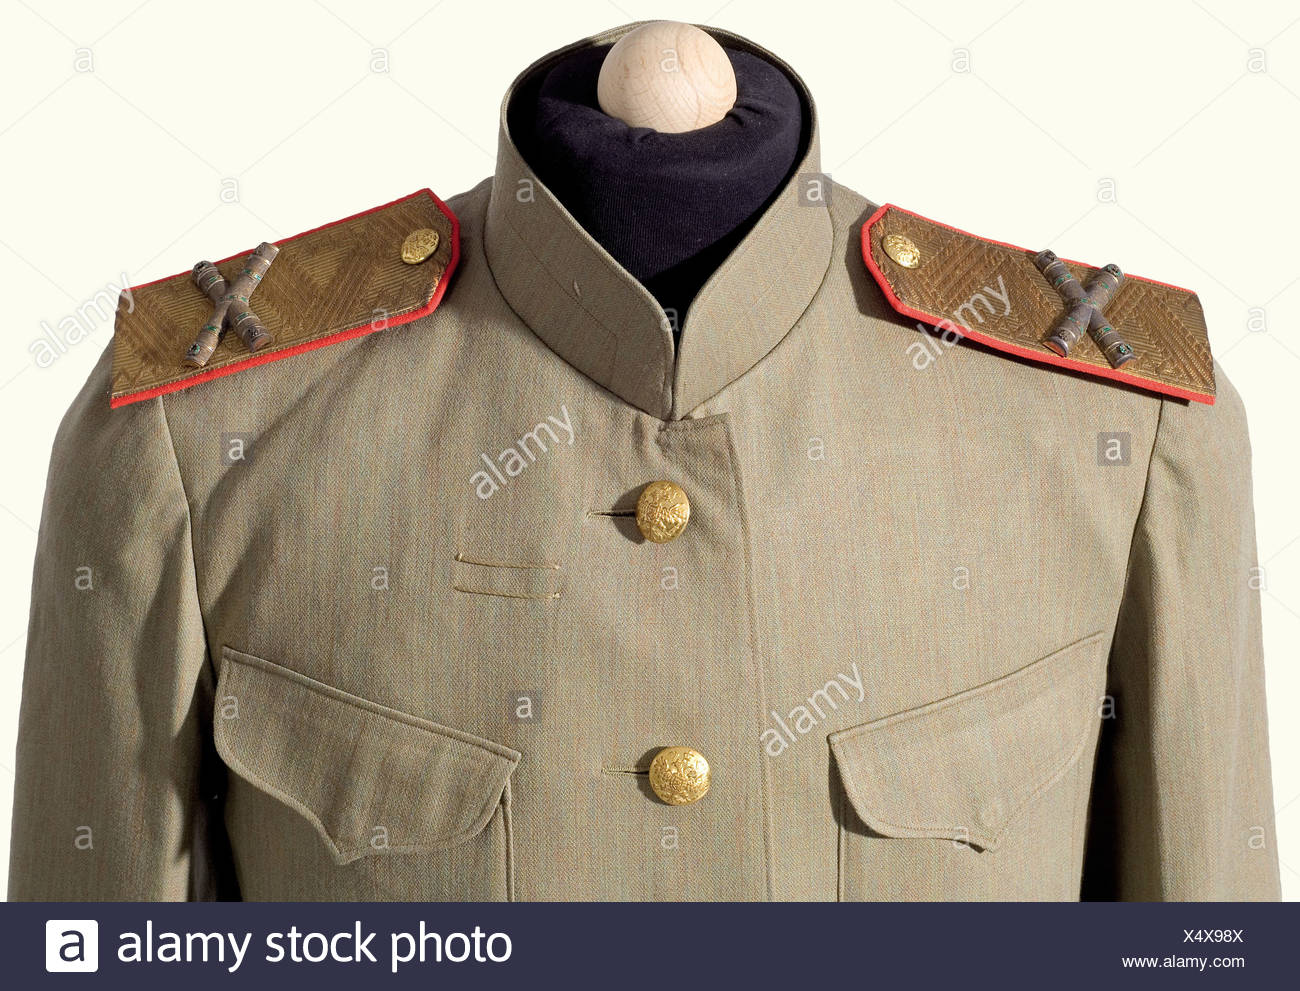 Kaiser Franz Joseph I of Austria (1830 - 1916) - a tunic and Field  Marshal's shoulder boards as the Colonel-Proprietor of the Russian  Kexholmski Foot Guard Regiment., The shoulder boards have superimposed